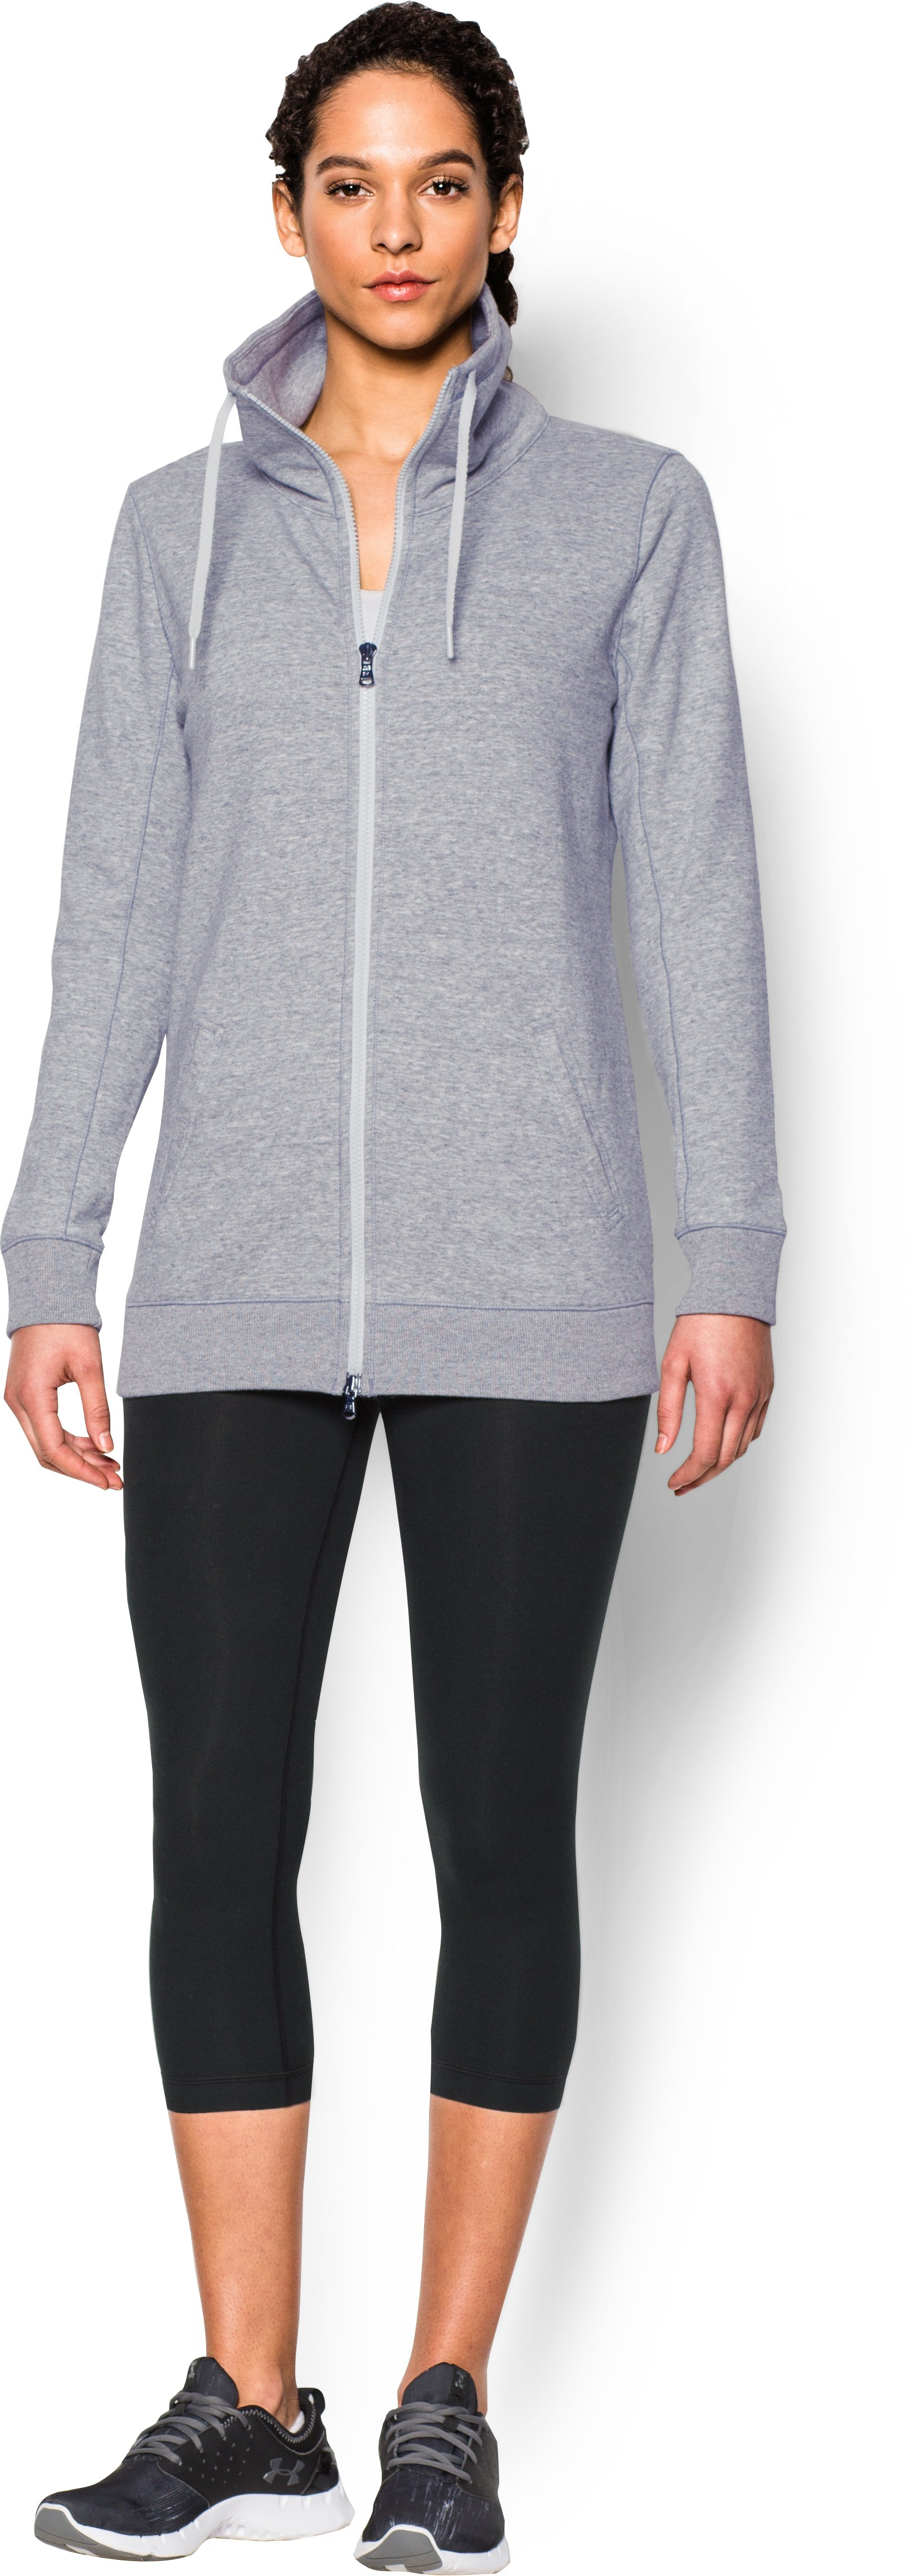 Women's UA Spring Terry Jacket, True Gray Heather